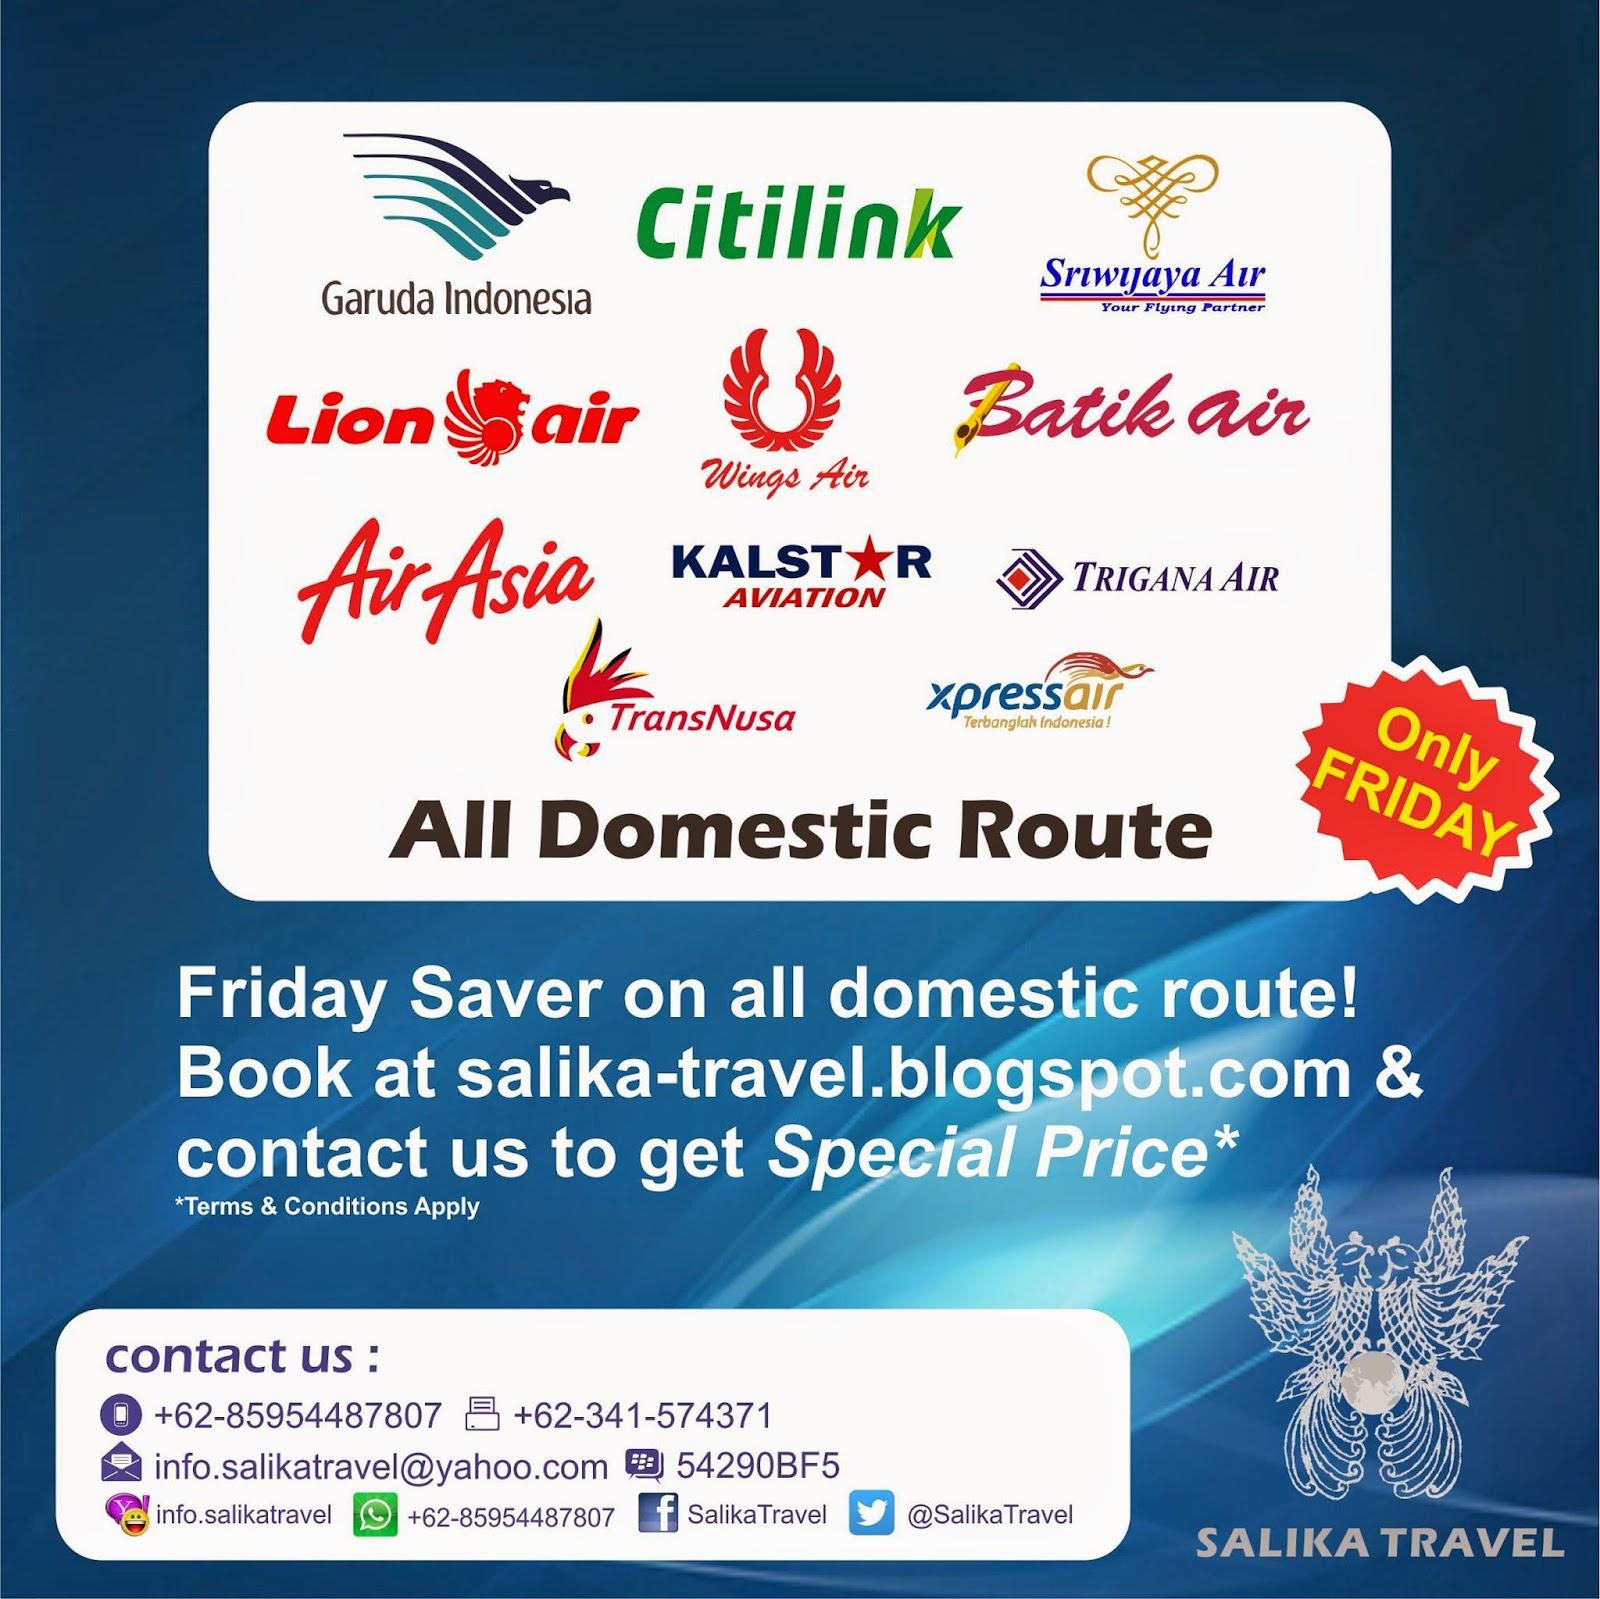 Friday Saver on All Domestic Flight - Salika Travel